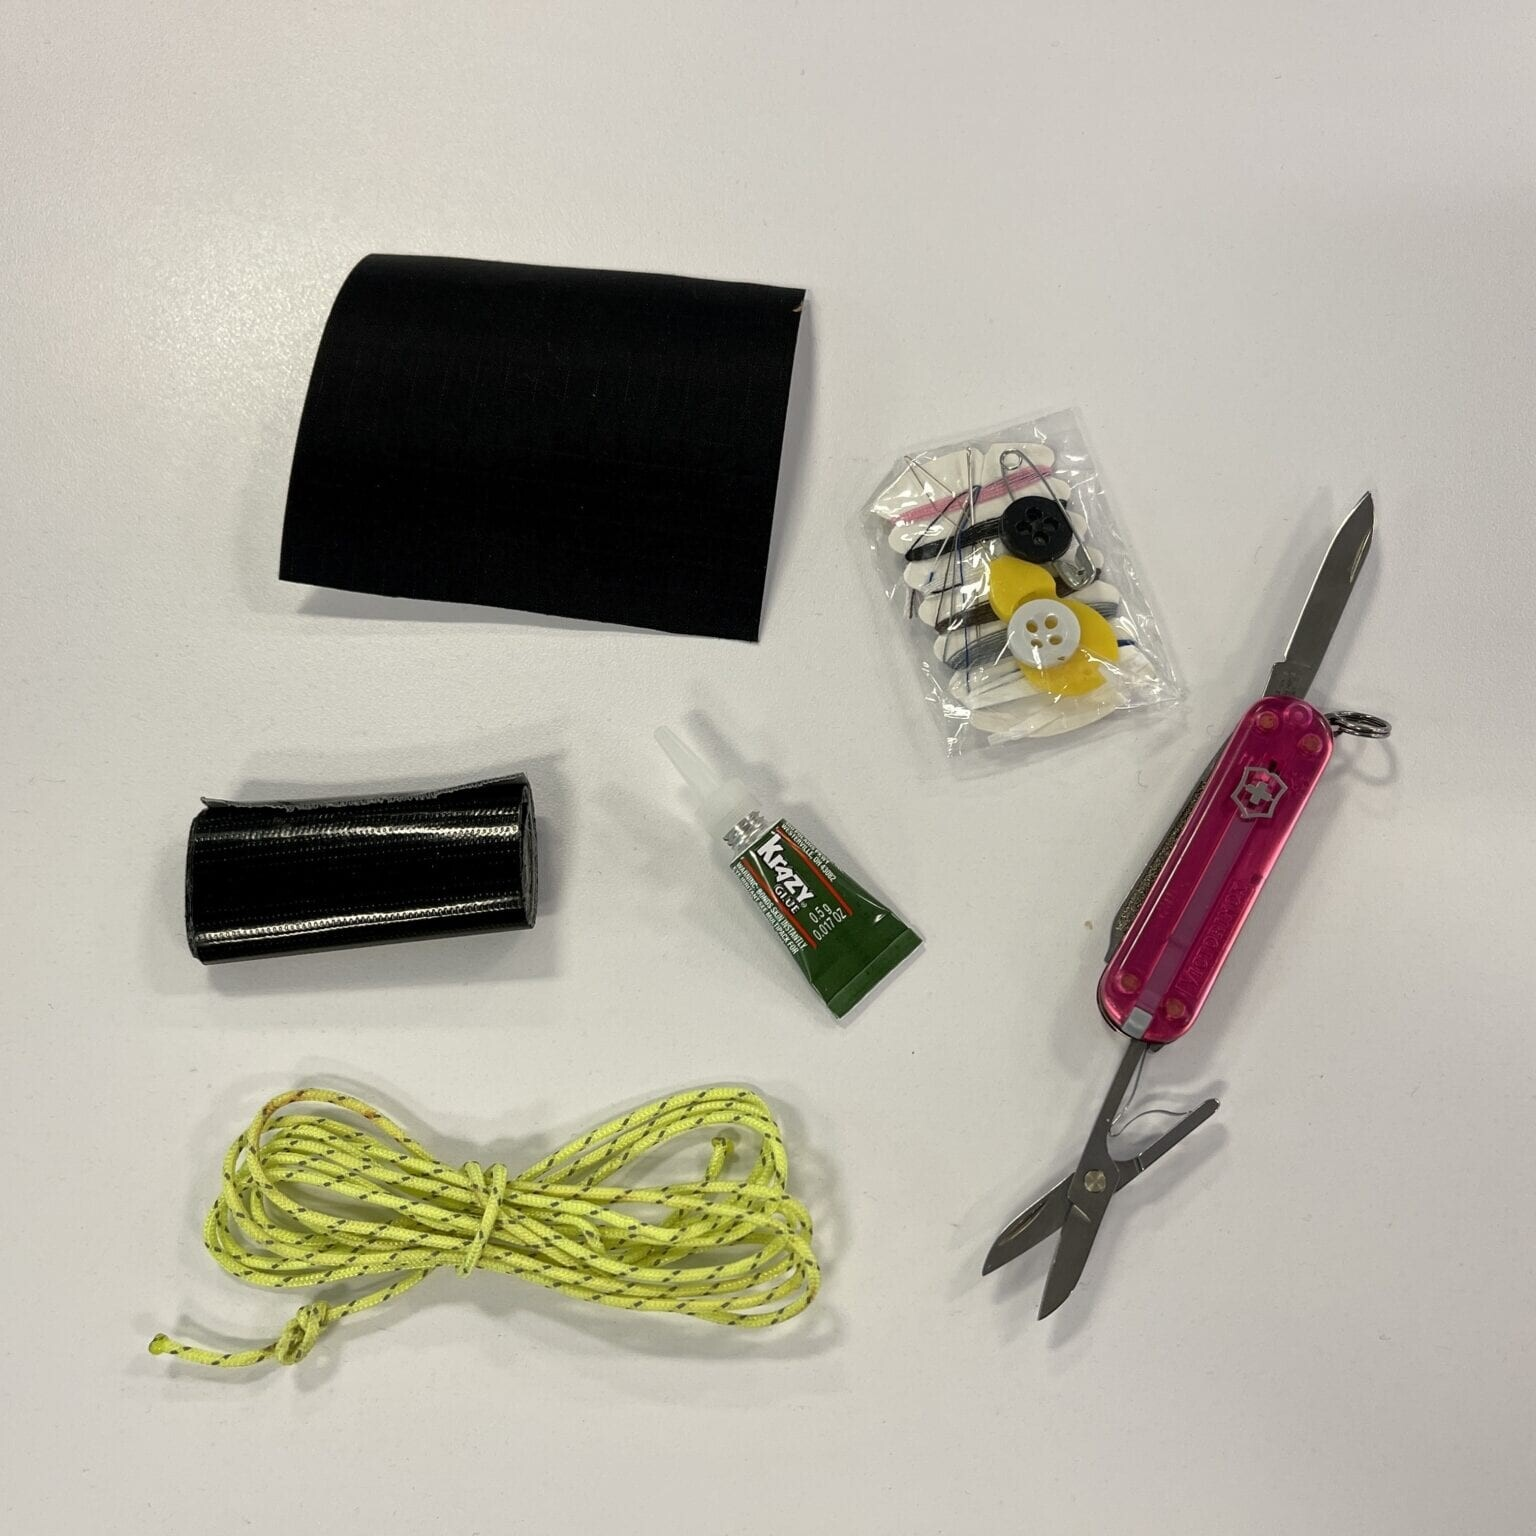 sewing kit, crazy glue, swiss army knife, rope, and tape laid across a table